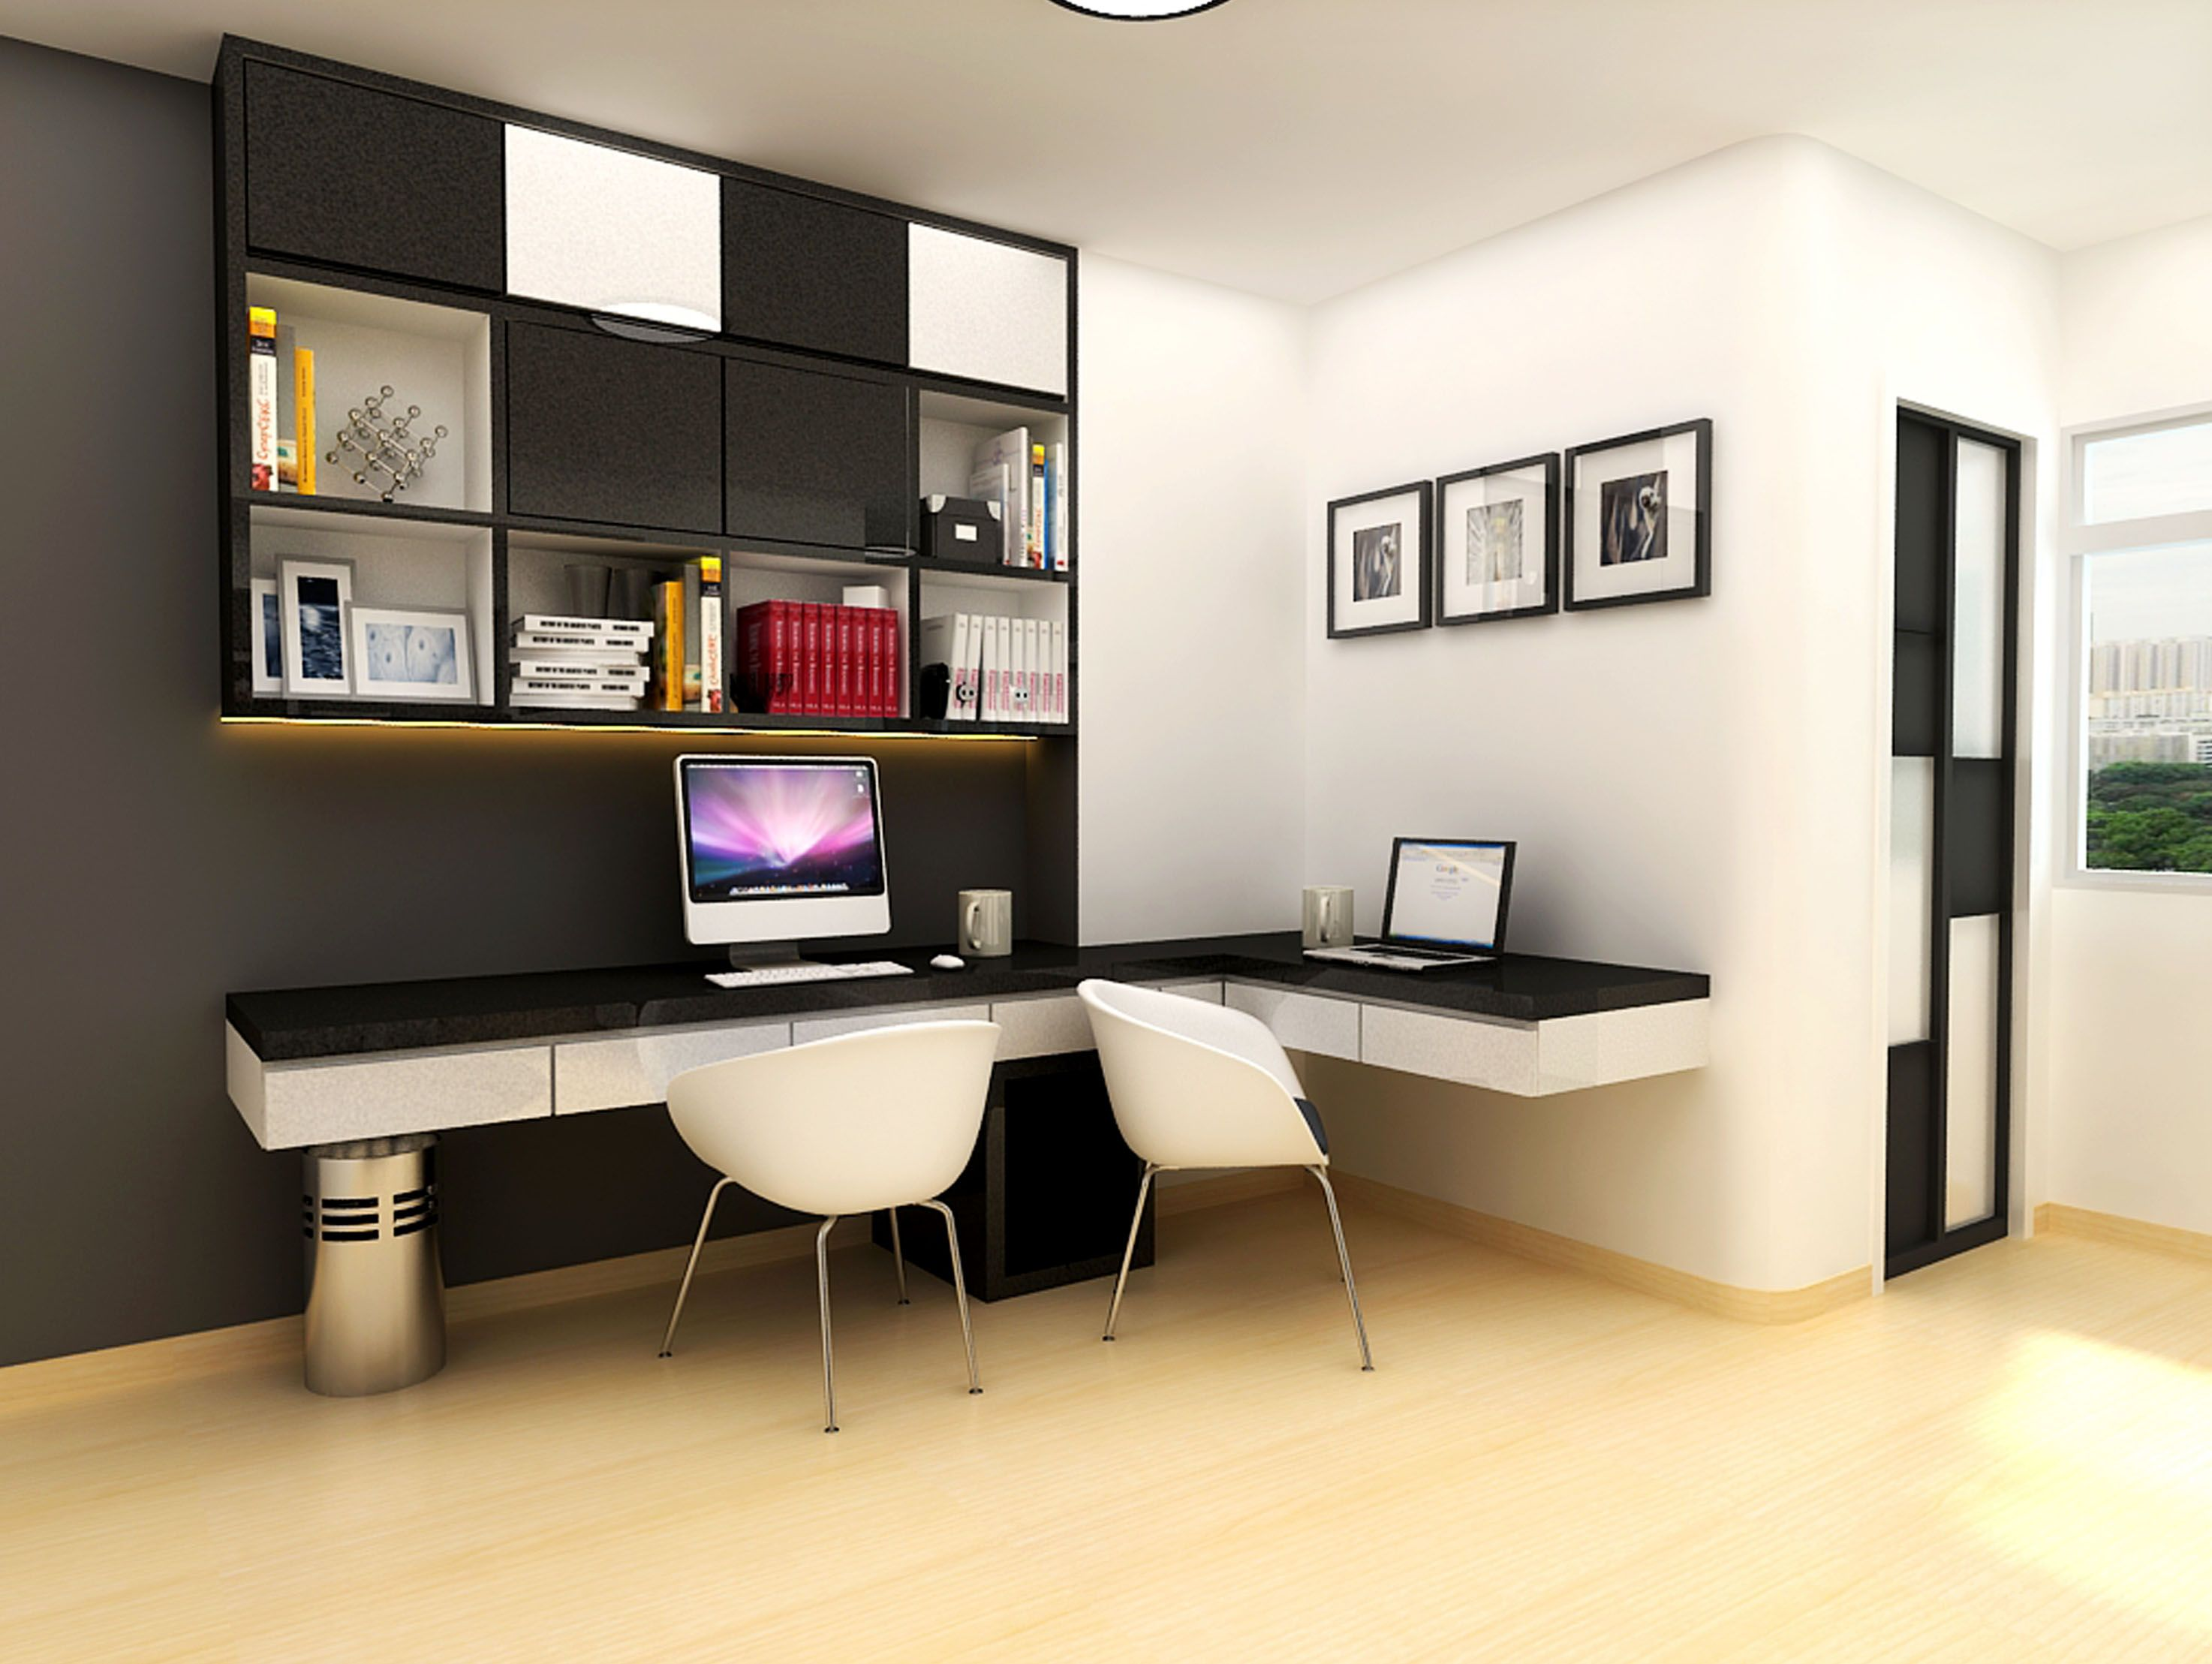 Small Study Room Ideas Modern Study Room Design Home Study Room With Gym